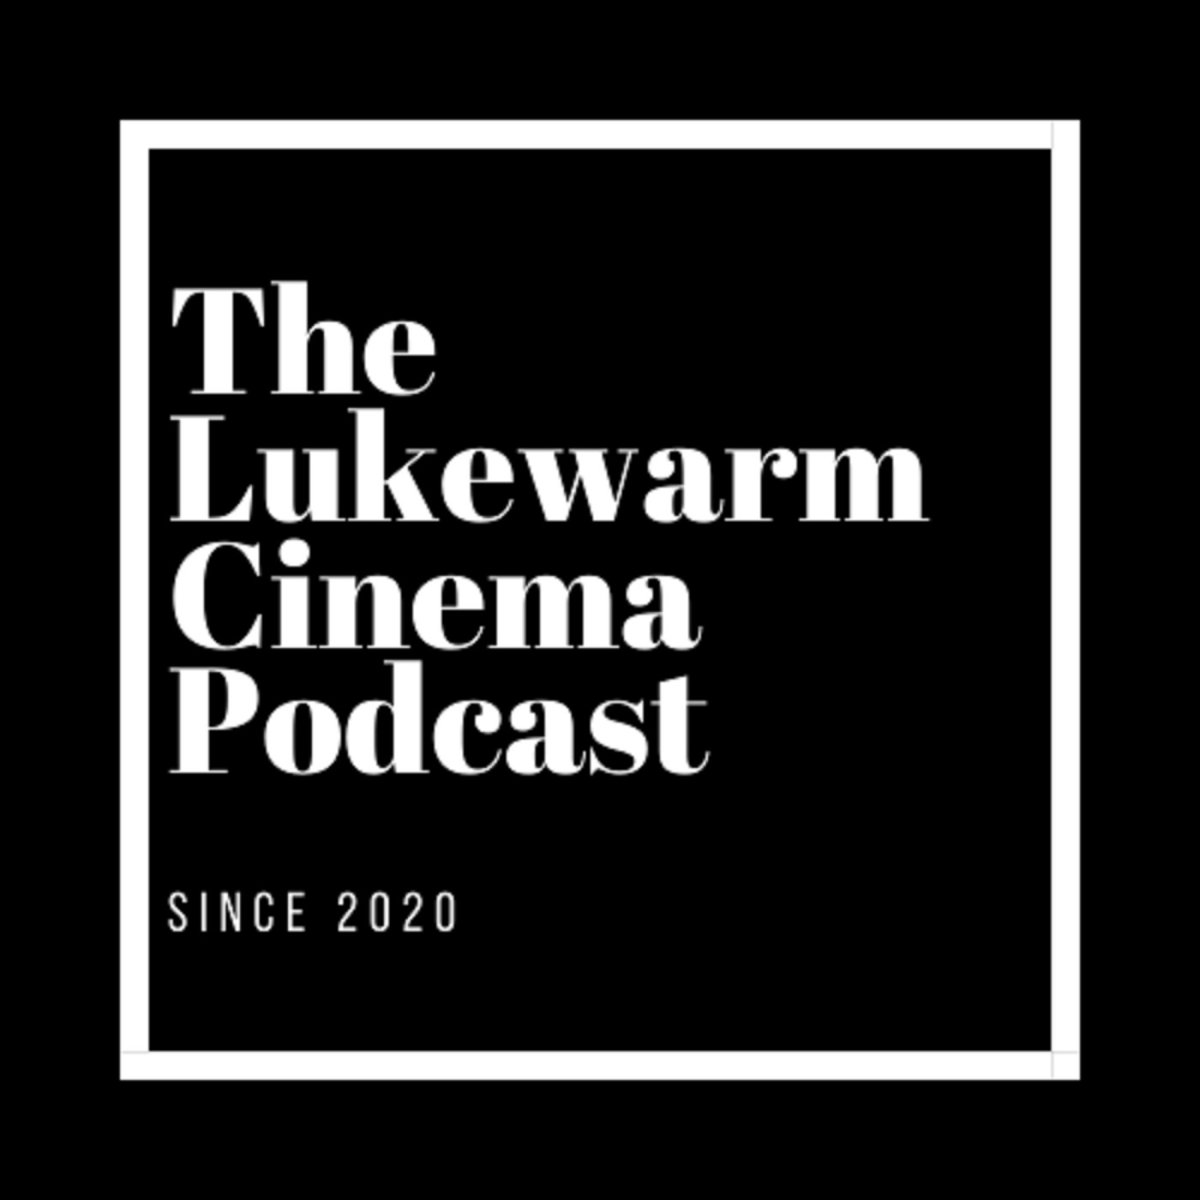 Tune in for a very special #podcast from @LukewarmCinema. Nothing you could possibly think of is better than this episode. #disney #BSPN